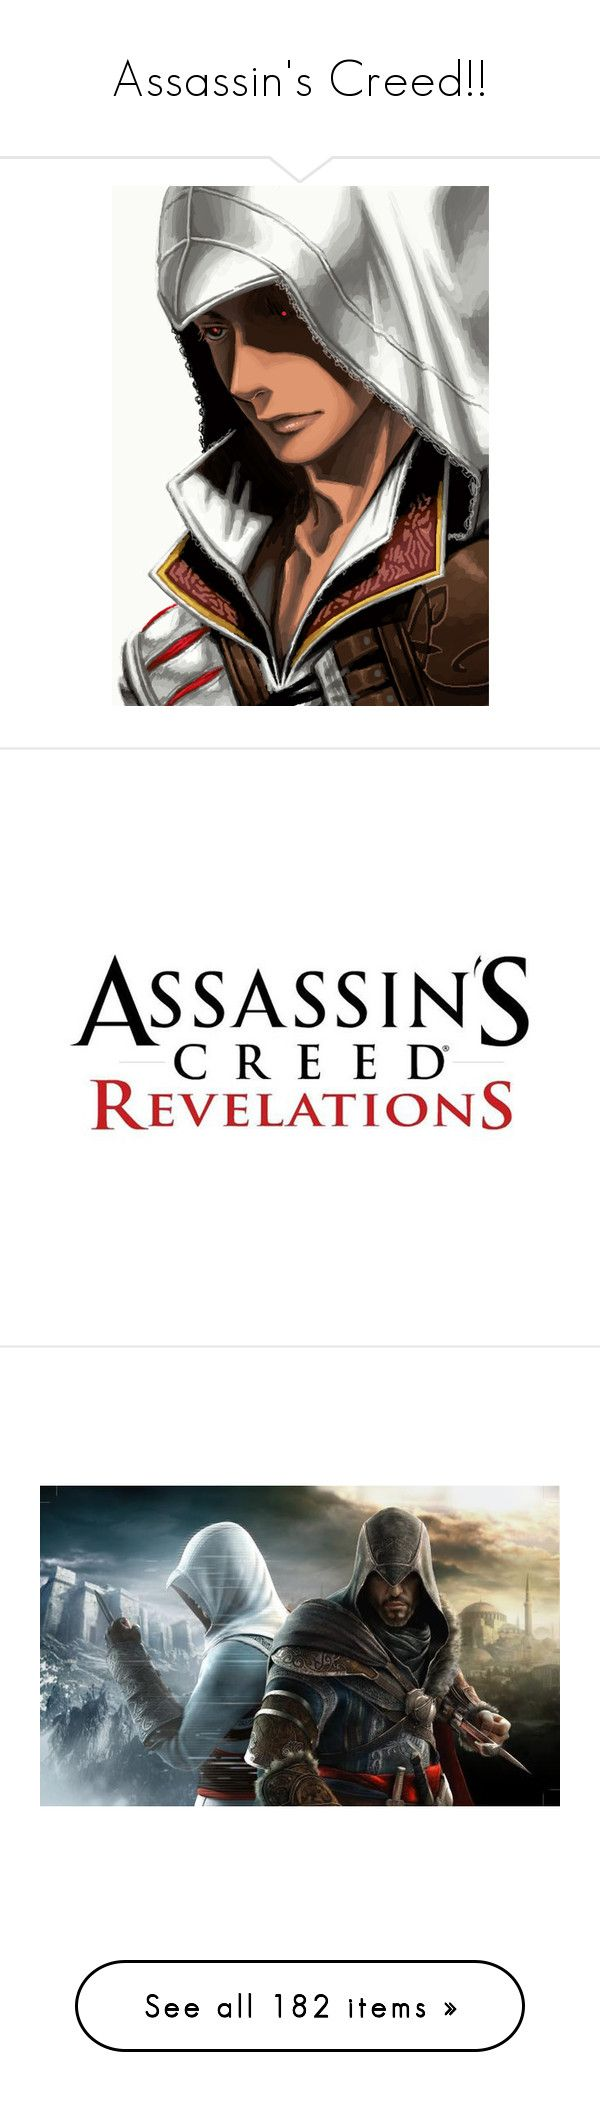 Lindsey Stirling Assassins Creed Wallpaper 8738 best My Po...